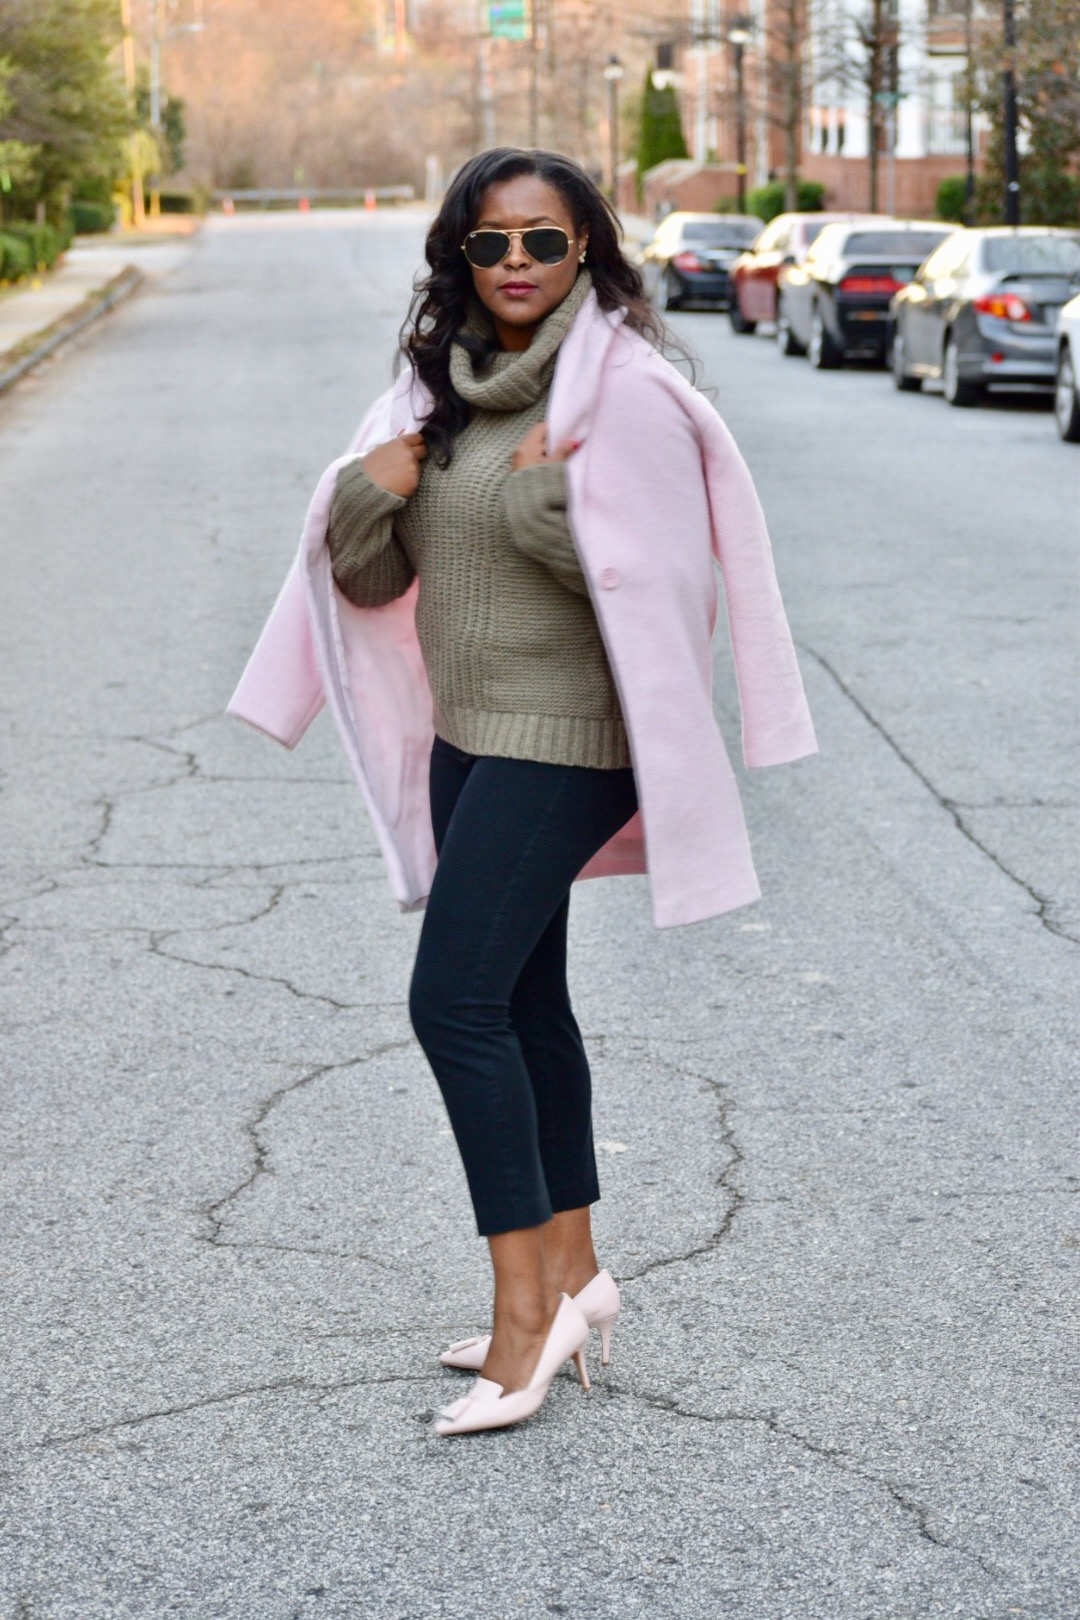 Eva Mendes X NYC Coat (old, but I like this one  here ), Banana Republic Sweater (old, similar  here ), Old Navy Pixie Pants ( here ), Banana Republic Shoes (old, similar  here ), Ray Ban Aviators ( here ), Chanel Brooch & Earrings